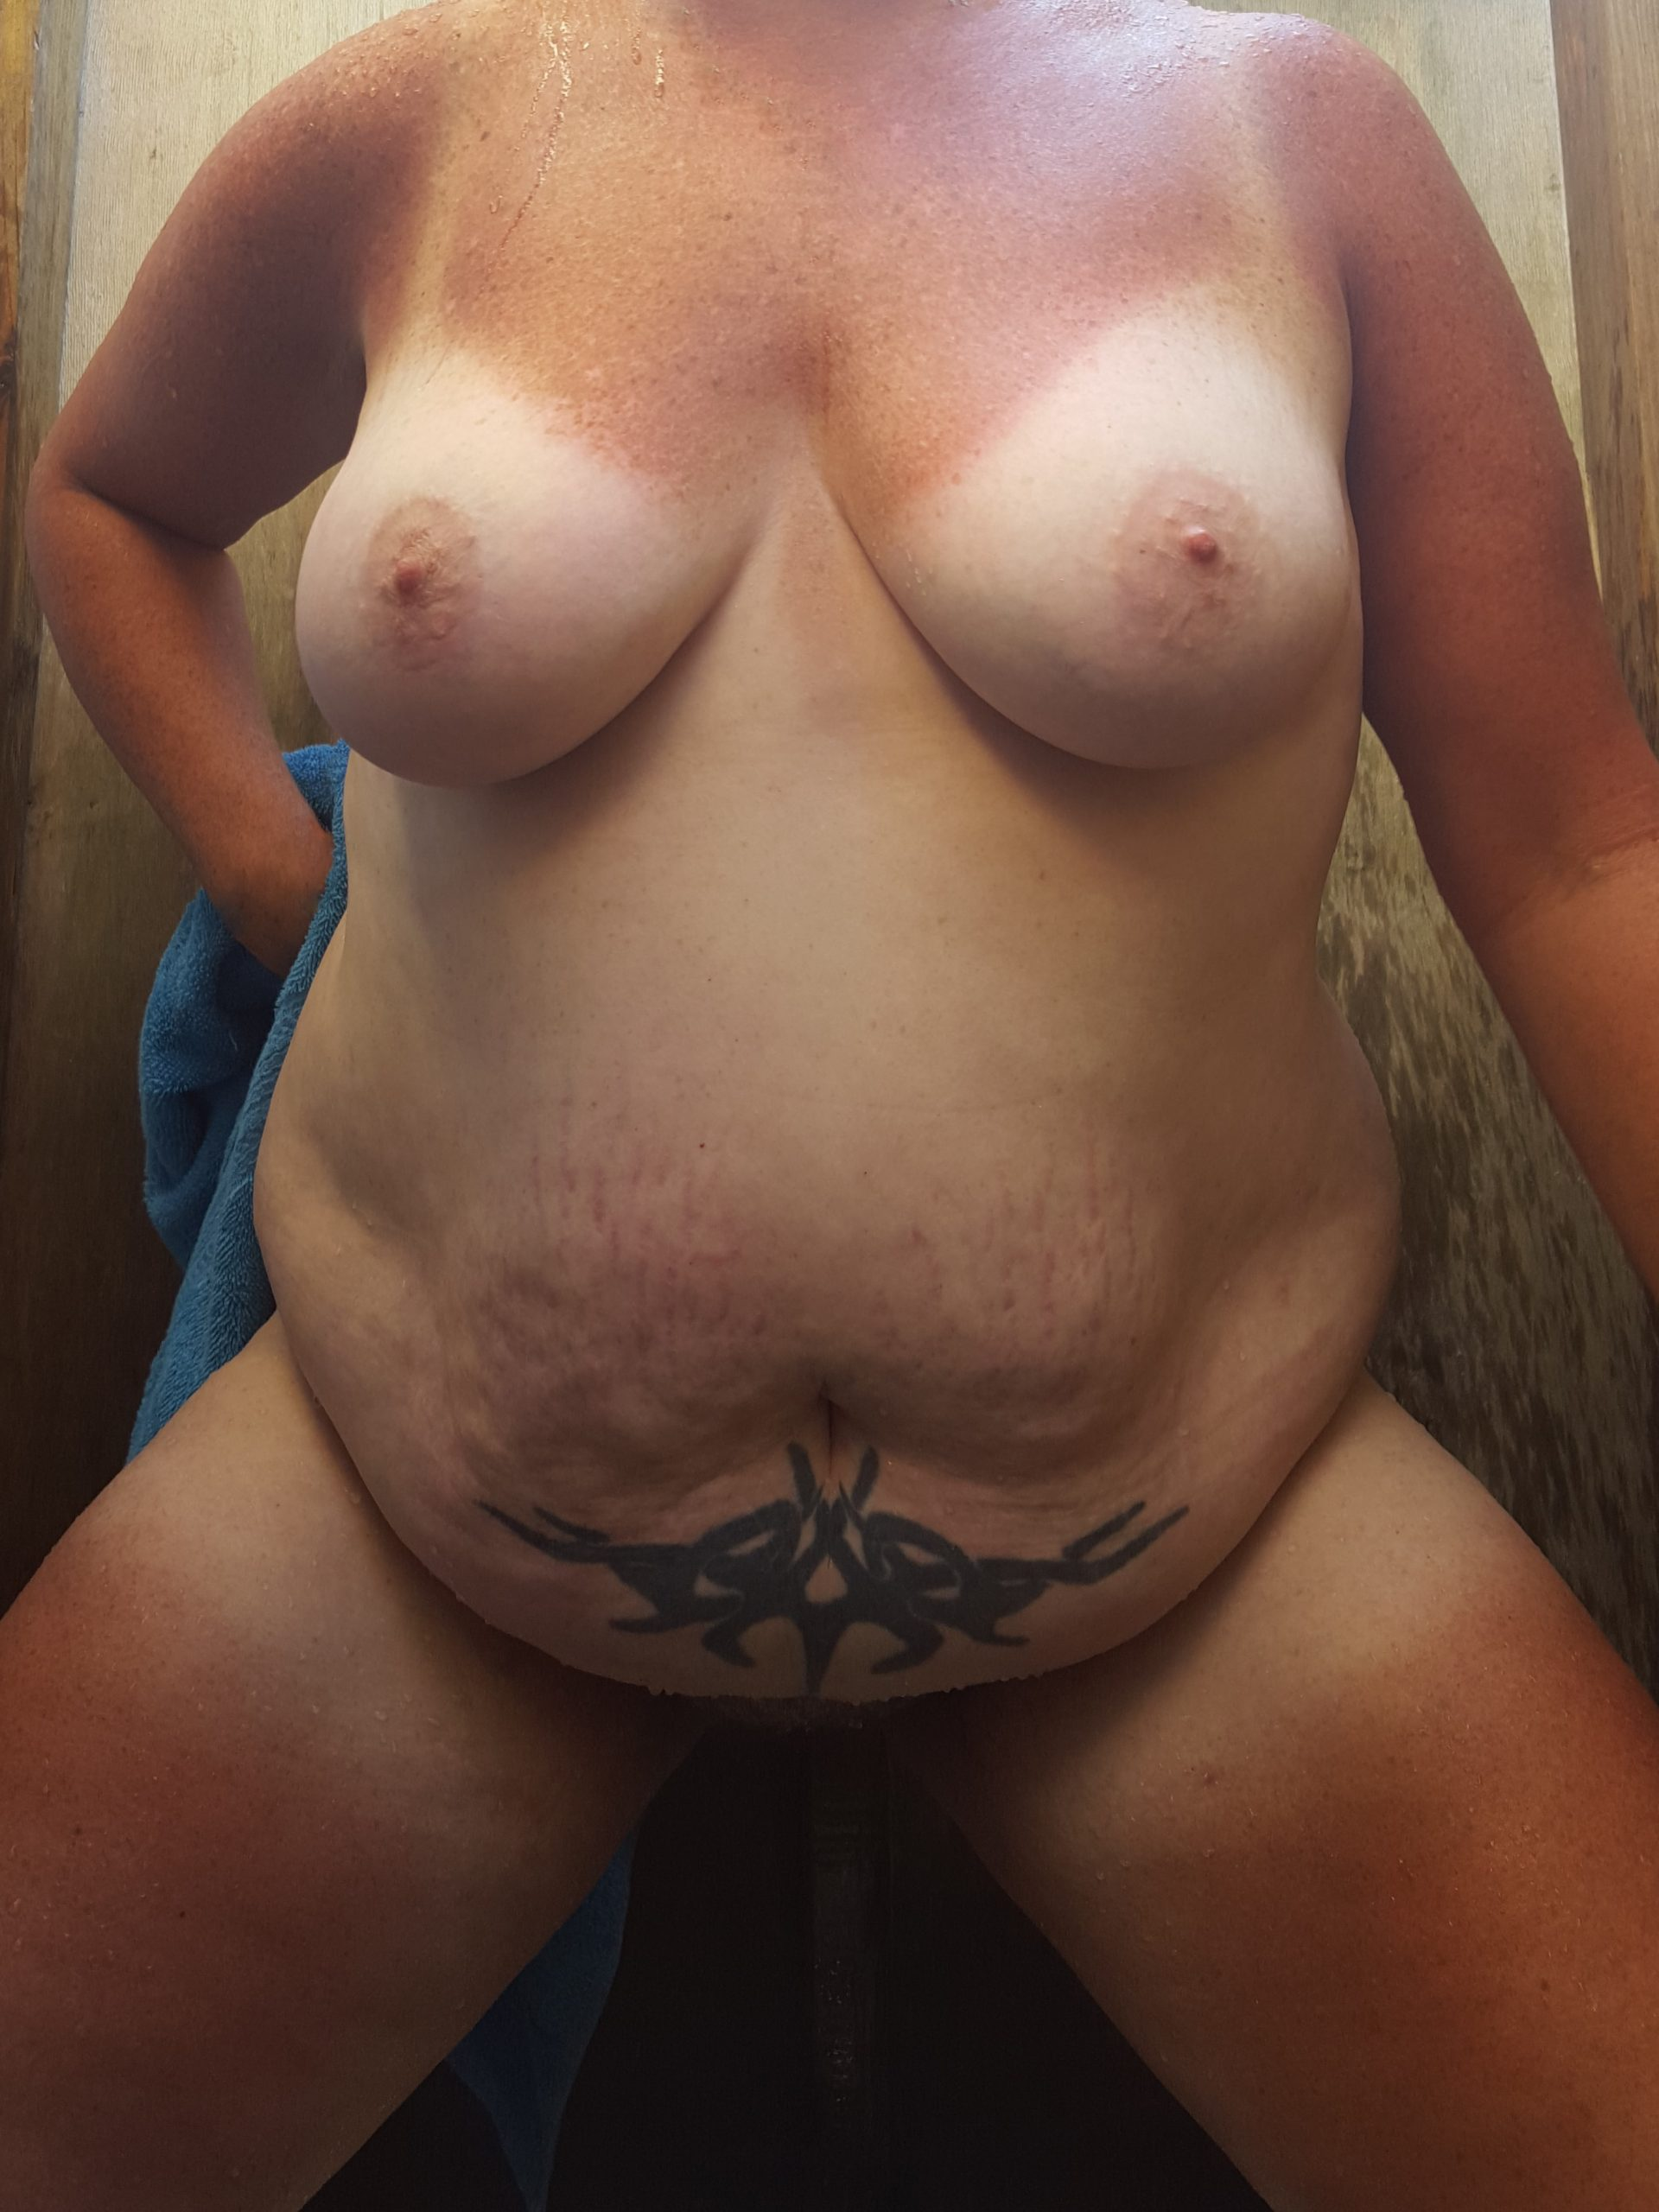 Chubby-Mature-Amateur-Fat-MILF-with-Nice-Pussy-8